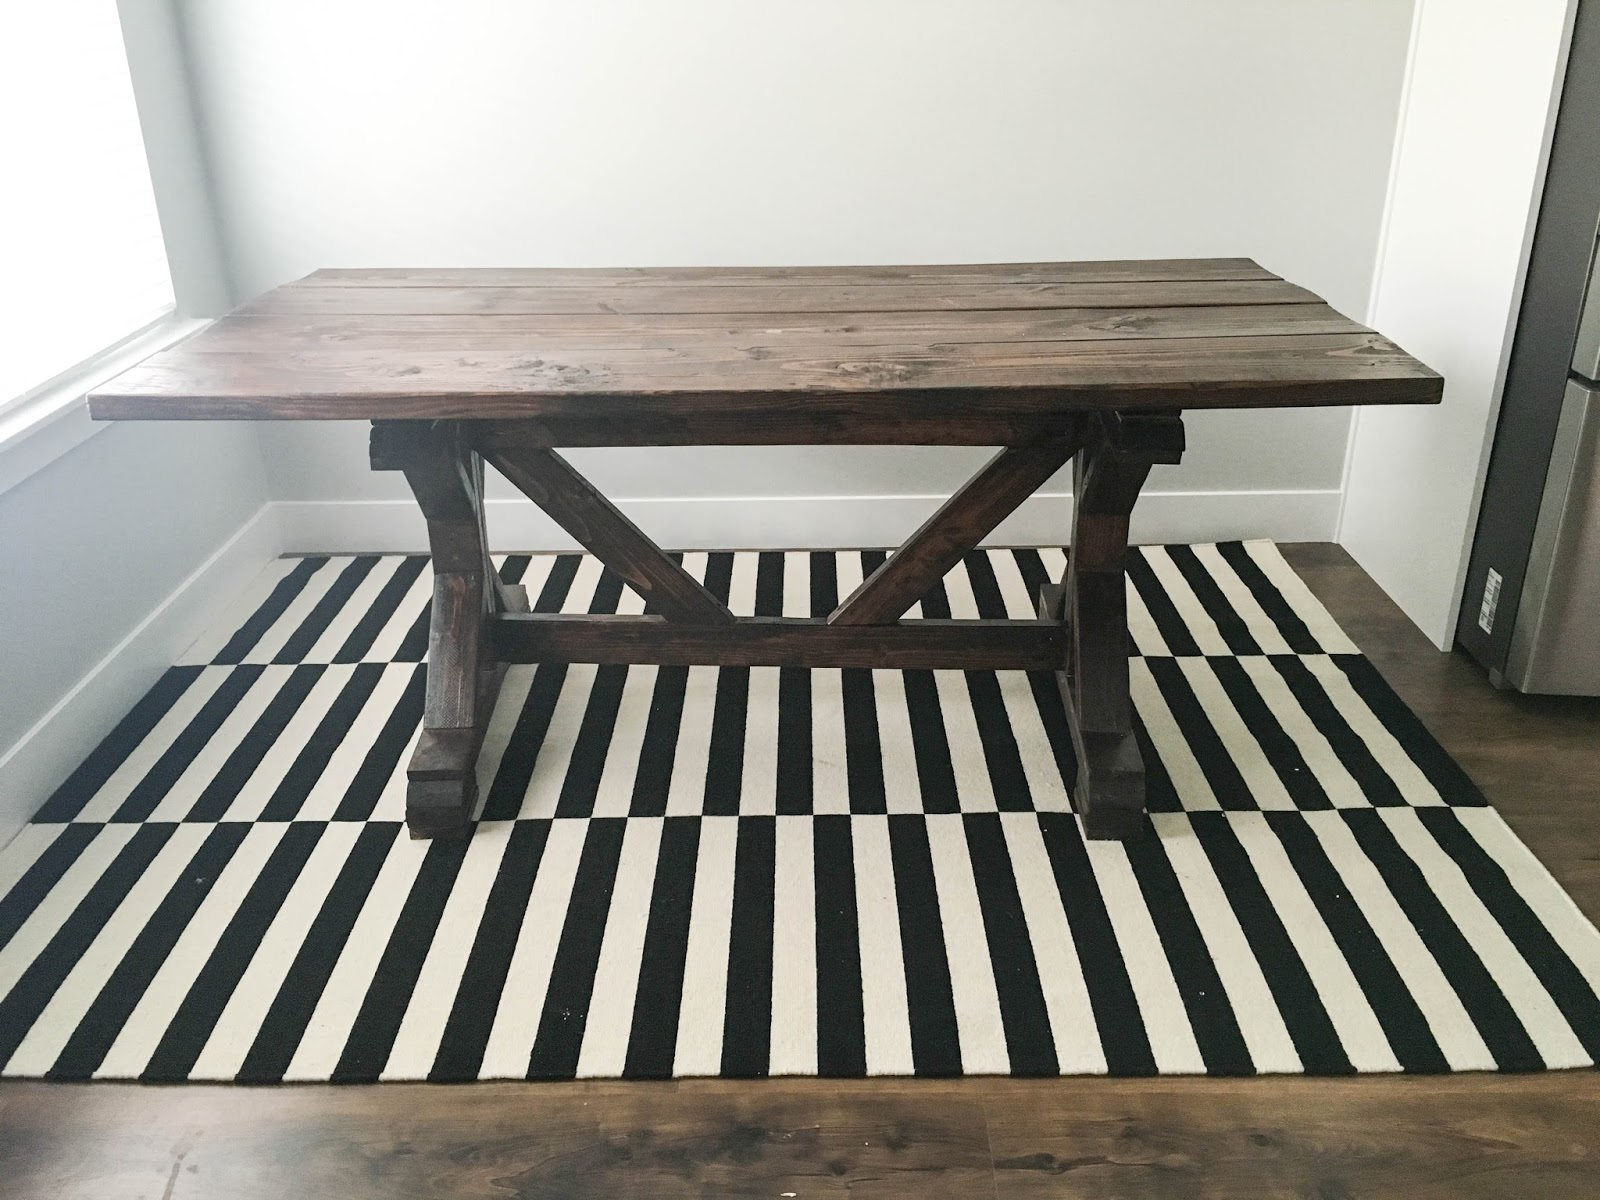 Dining Room Table: Desert Wood Works...